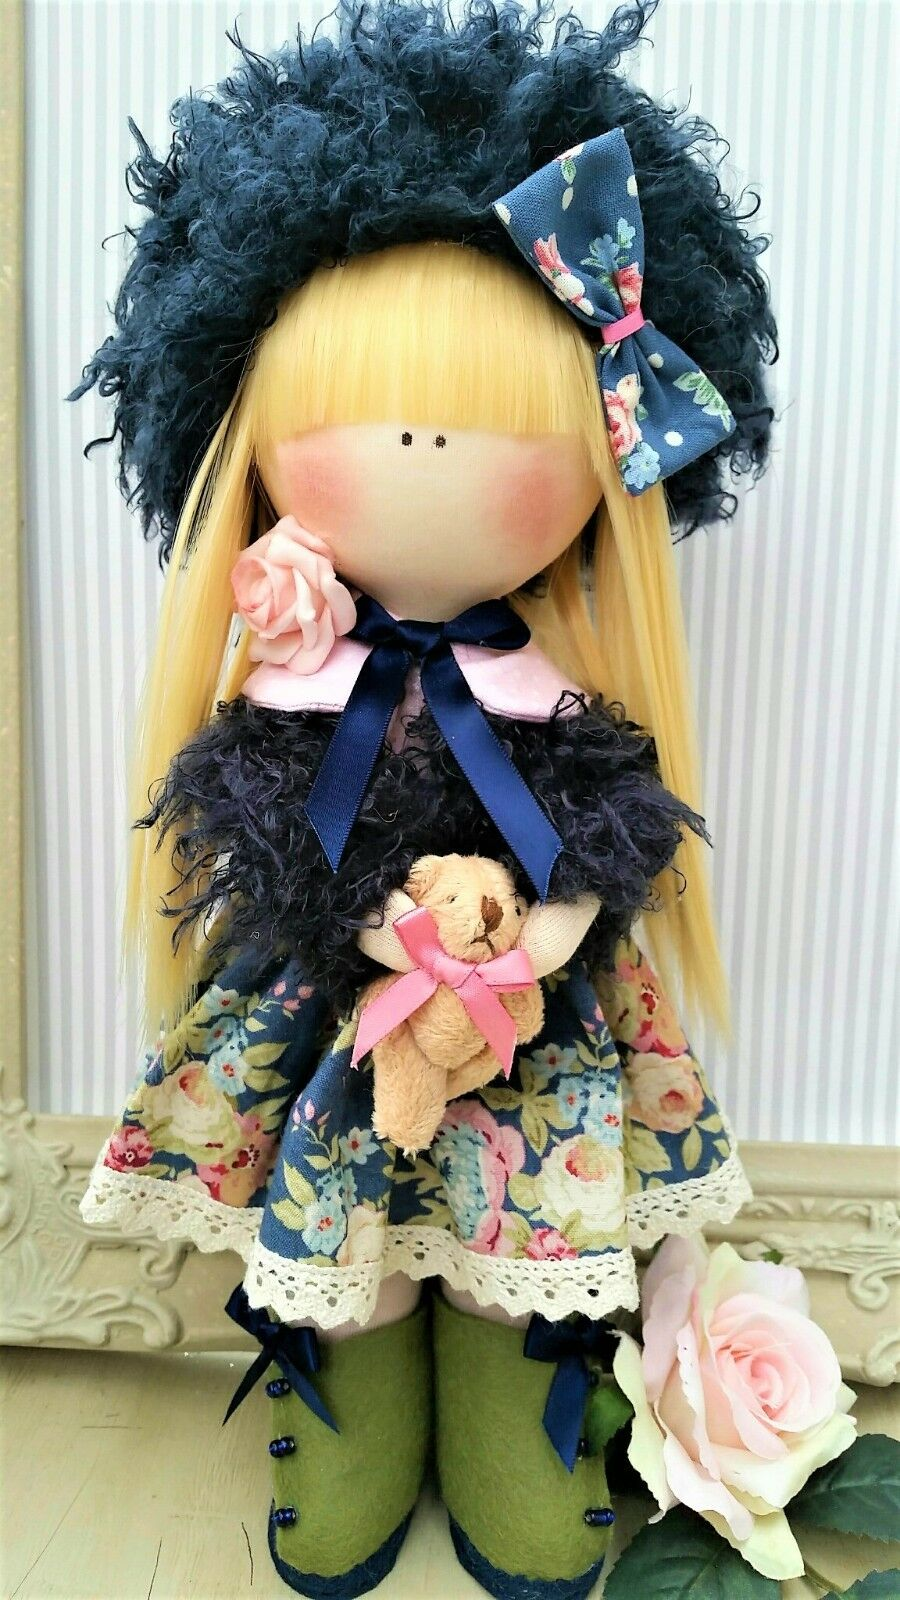 Rag doll Handmade in UK Tilda doll Ooak doll Art doll SOPHIA 12.5 inches tall